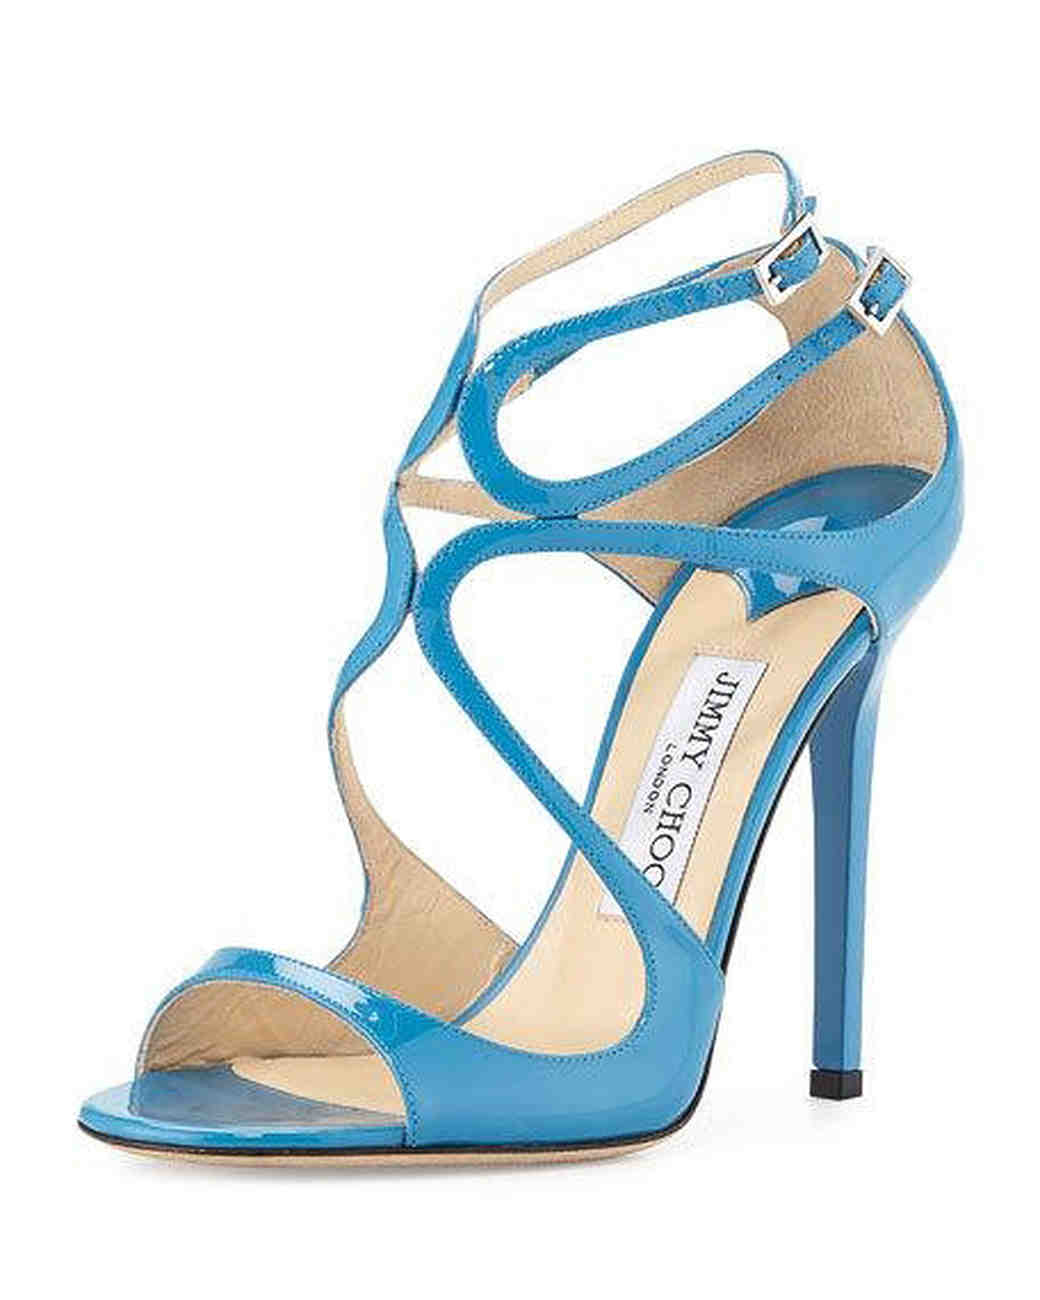 Jimmy Choo Patent Leather Strappy Sandals in Robot Blue